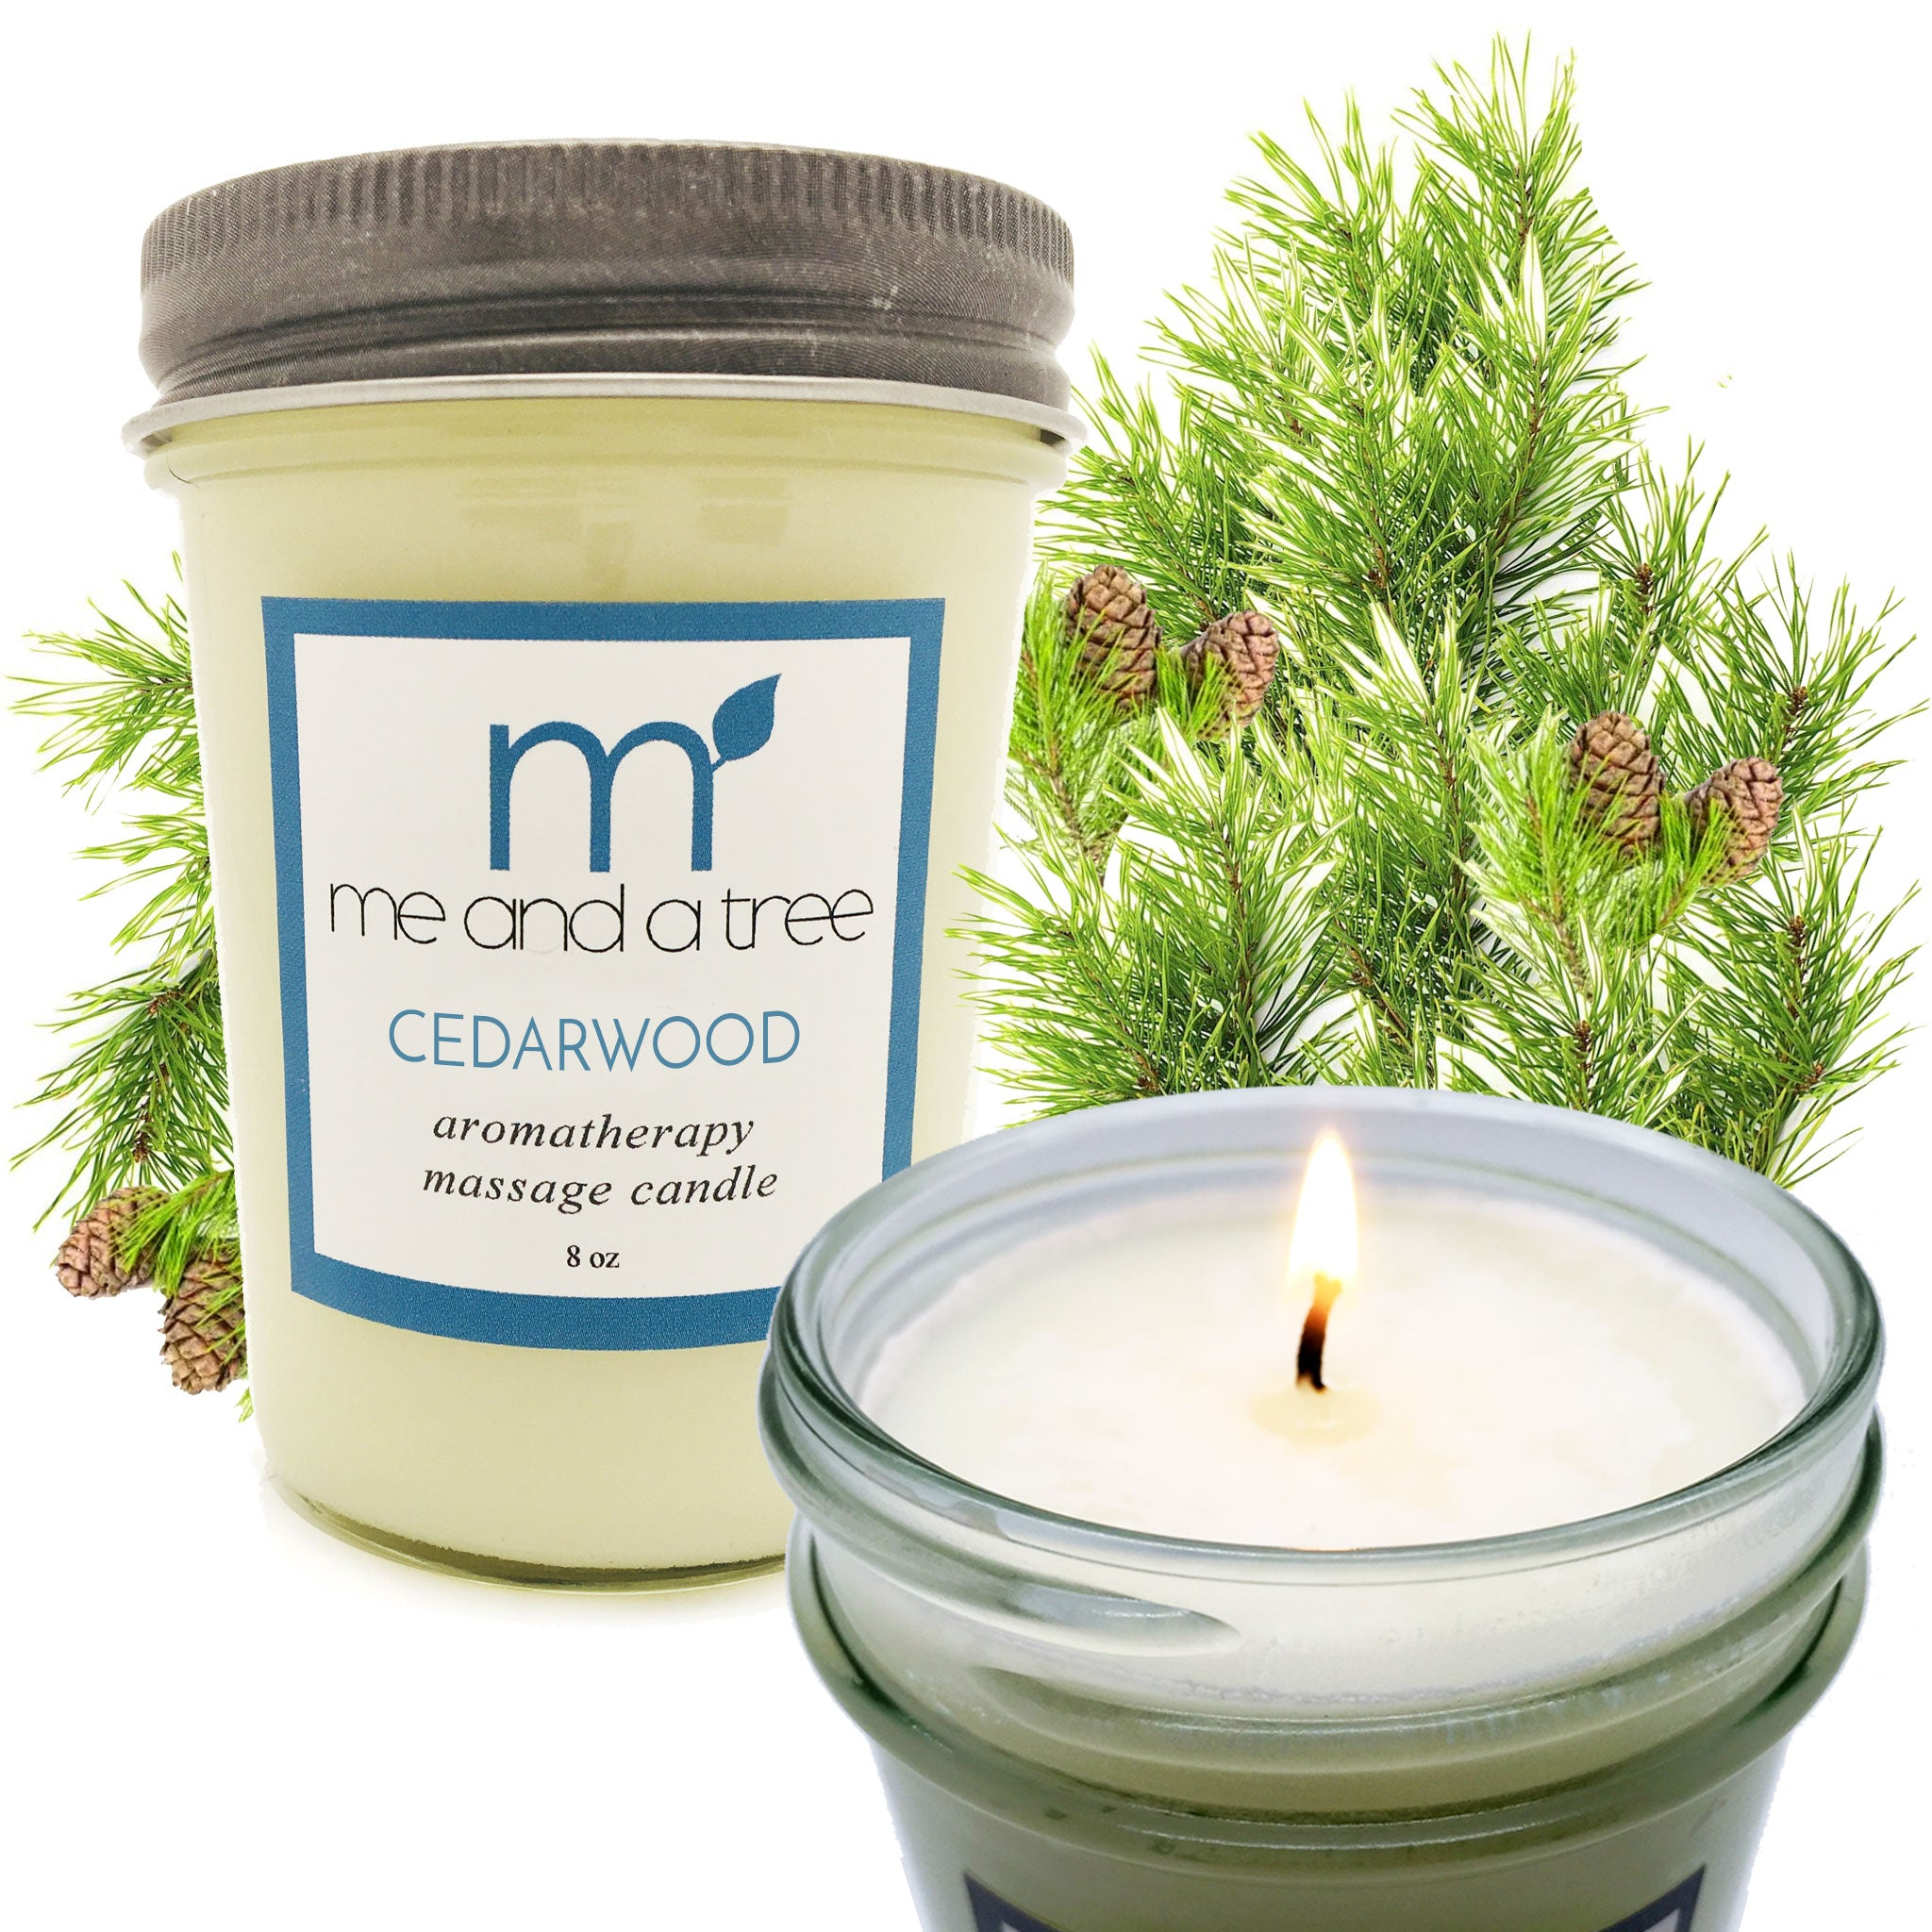 Cedarwood Soy Candle - me and a tree skincare